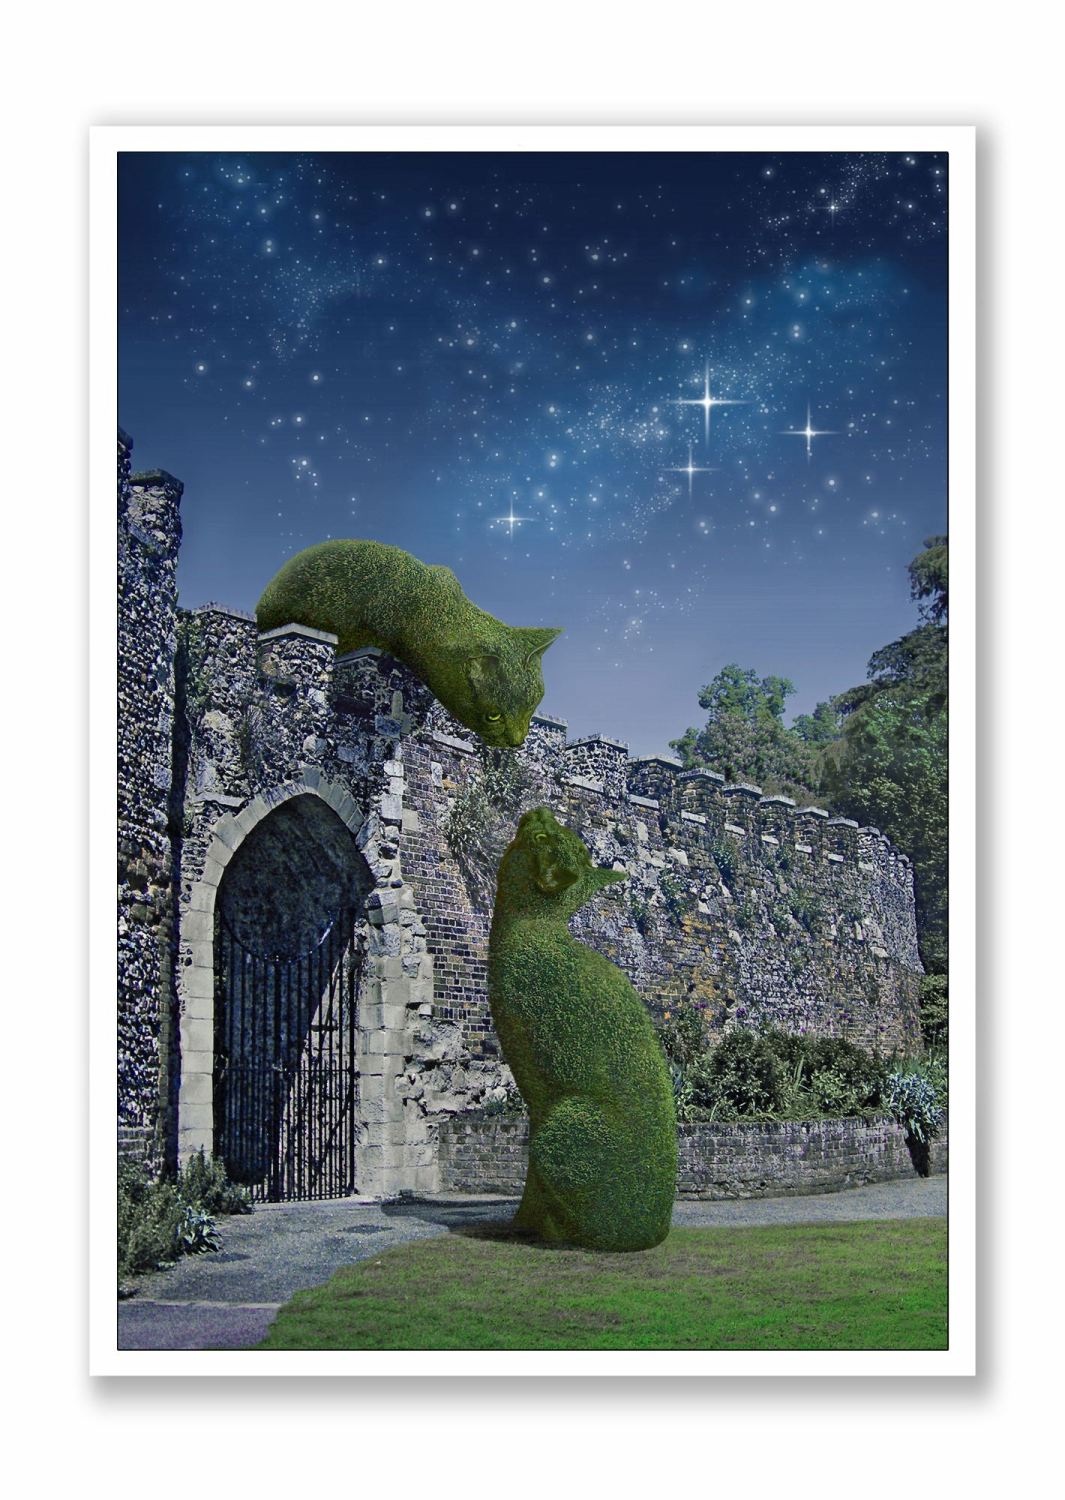 Topiary Cats on Wall Moonlit